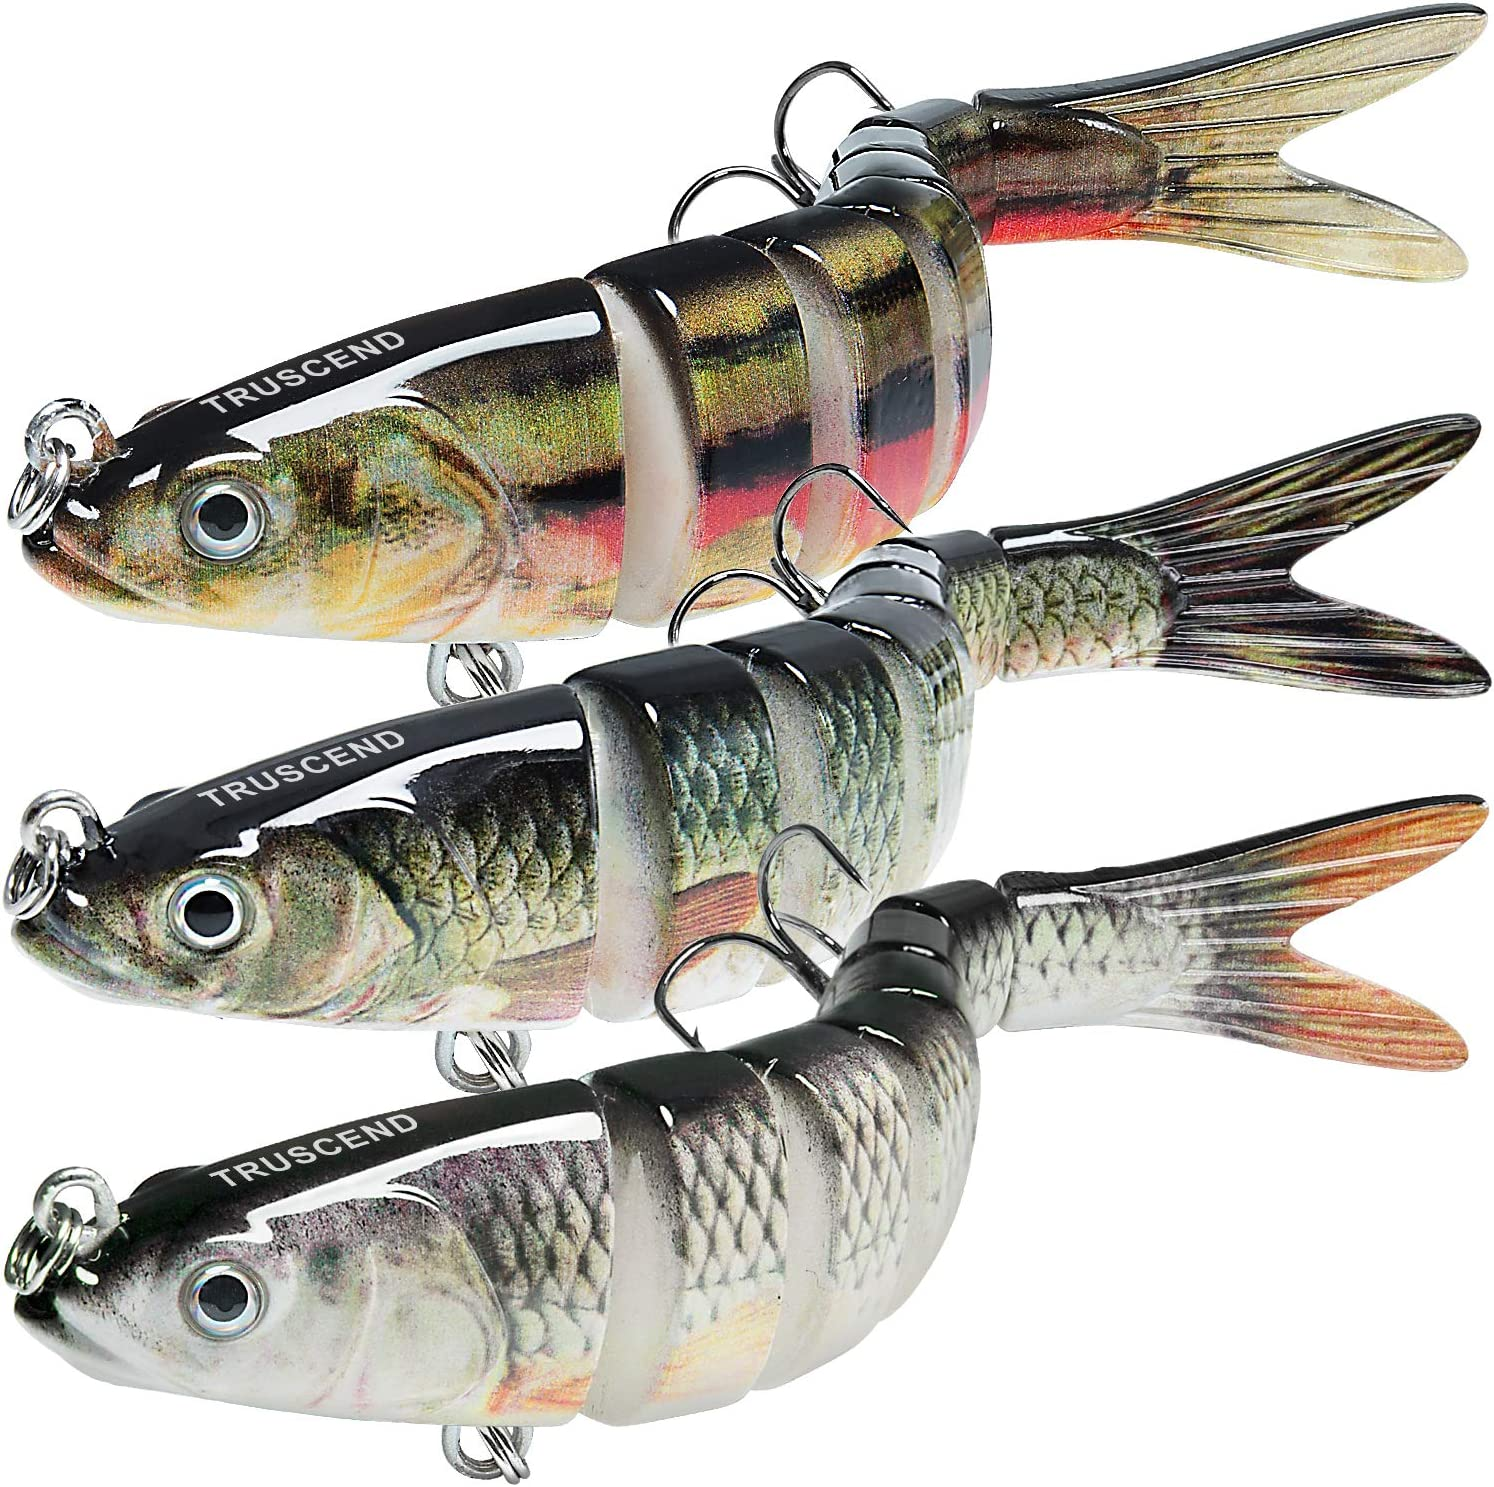 TRUSCEND Fishing Lures for Bass Trout Lifelike Kit